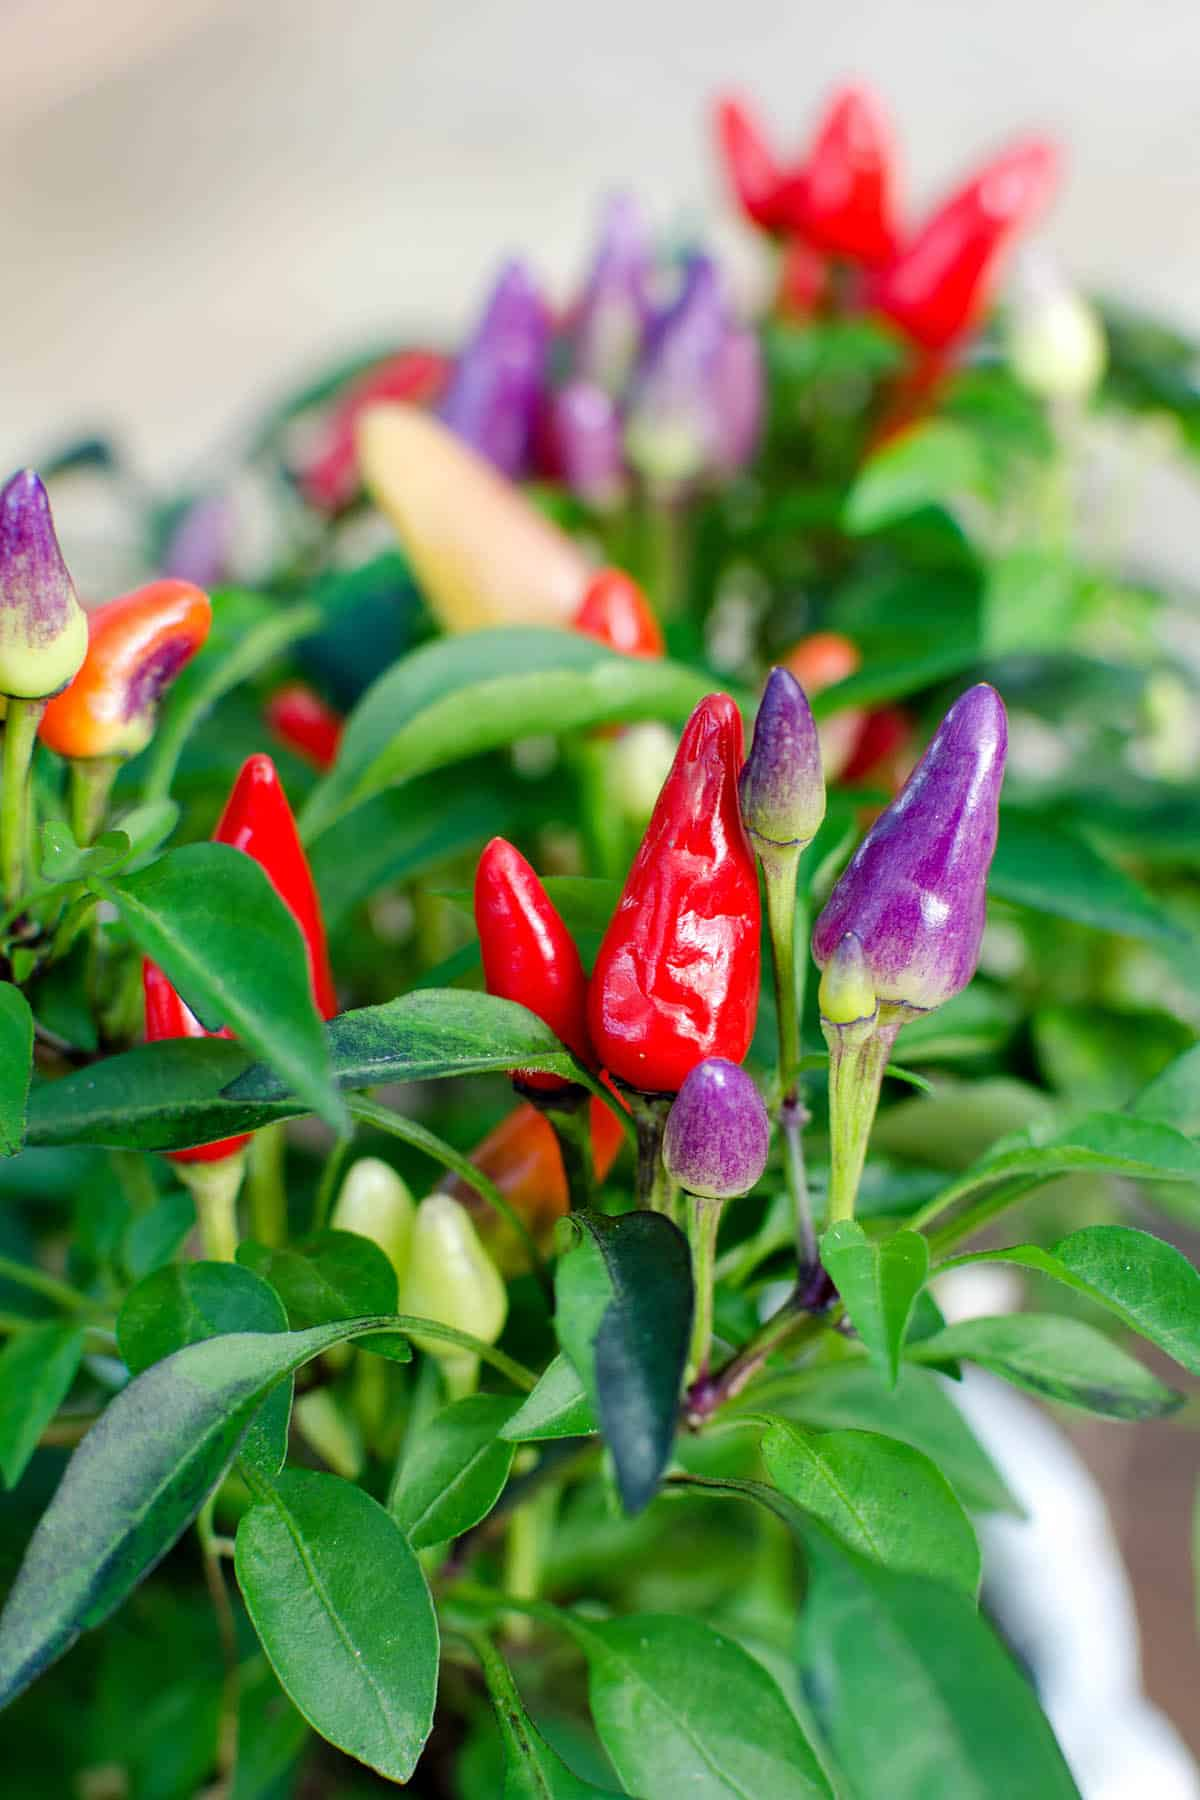 Bolivian Rainbow Chili Peppers